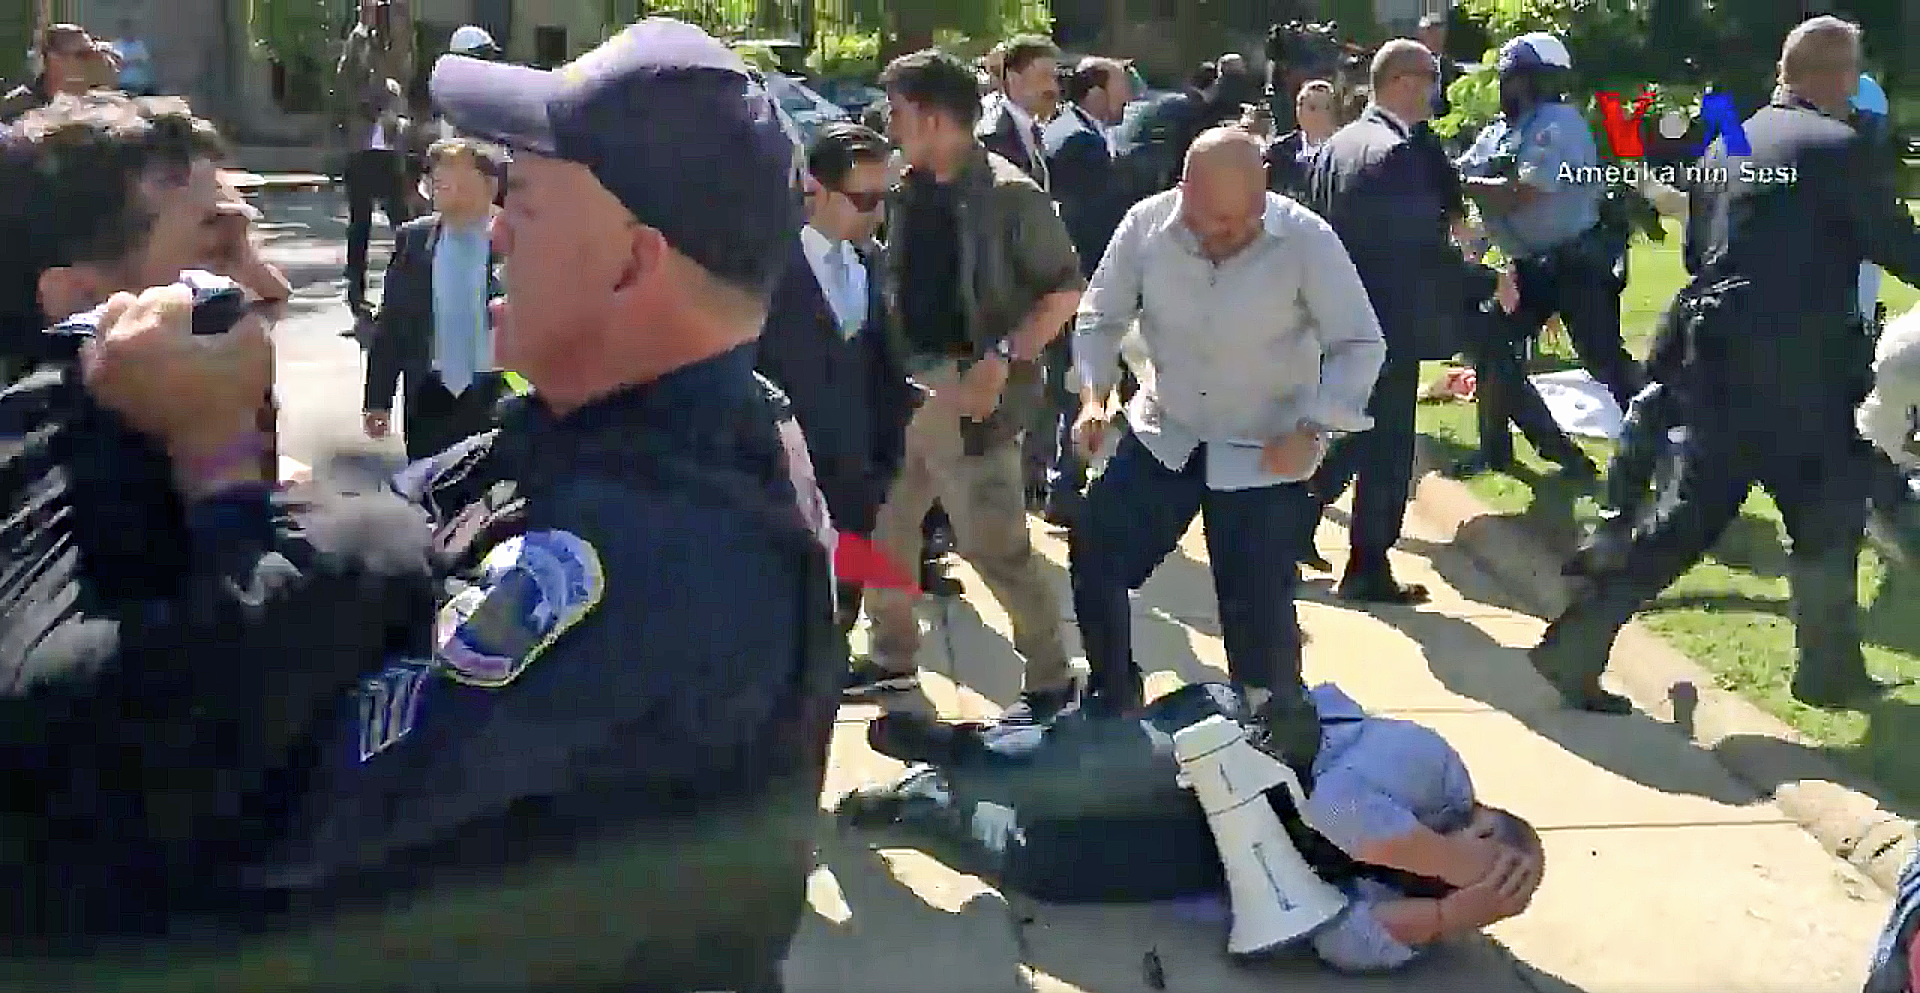 The assault of anti-Erdogan protestors by the Turkish president's bodyguards in Washington, DC